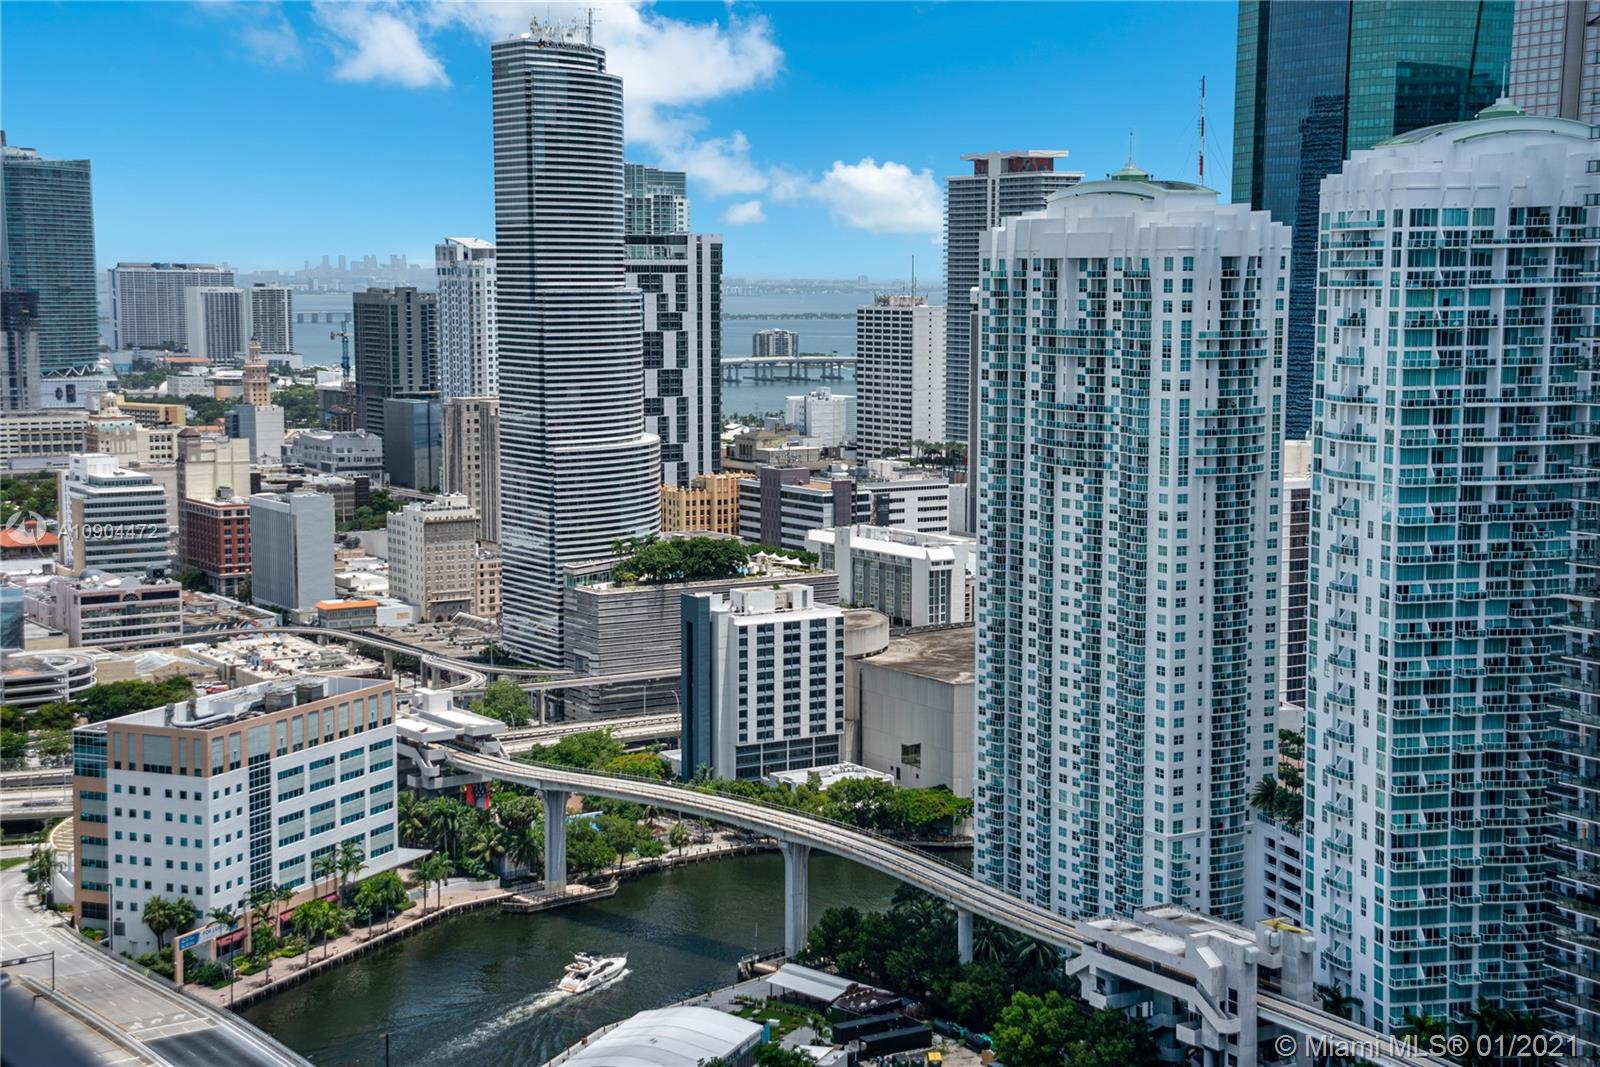 Rise Brickell City Centre #3503 - 88 SW 7th St #3503, Miami, FL 33130